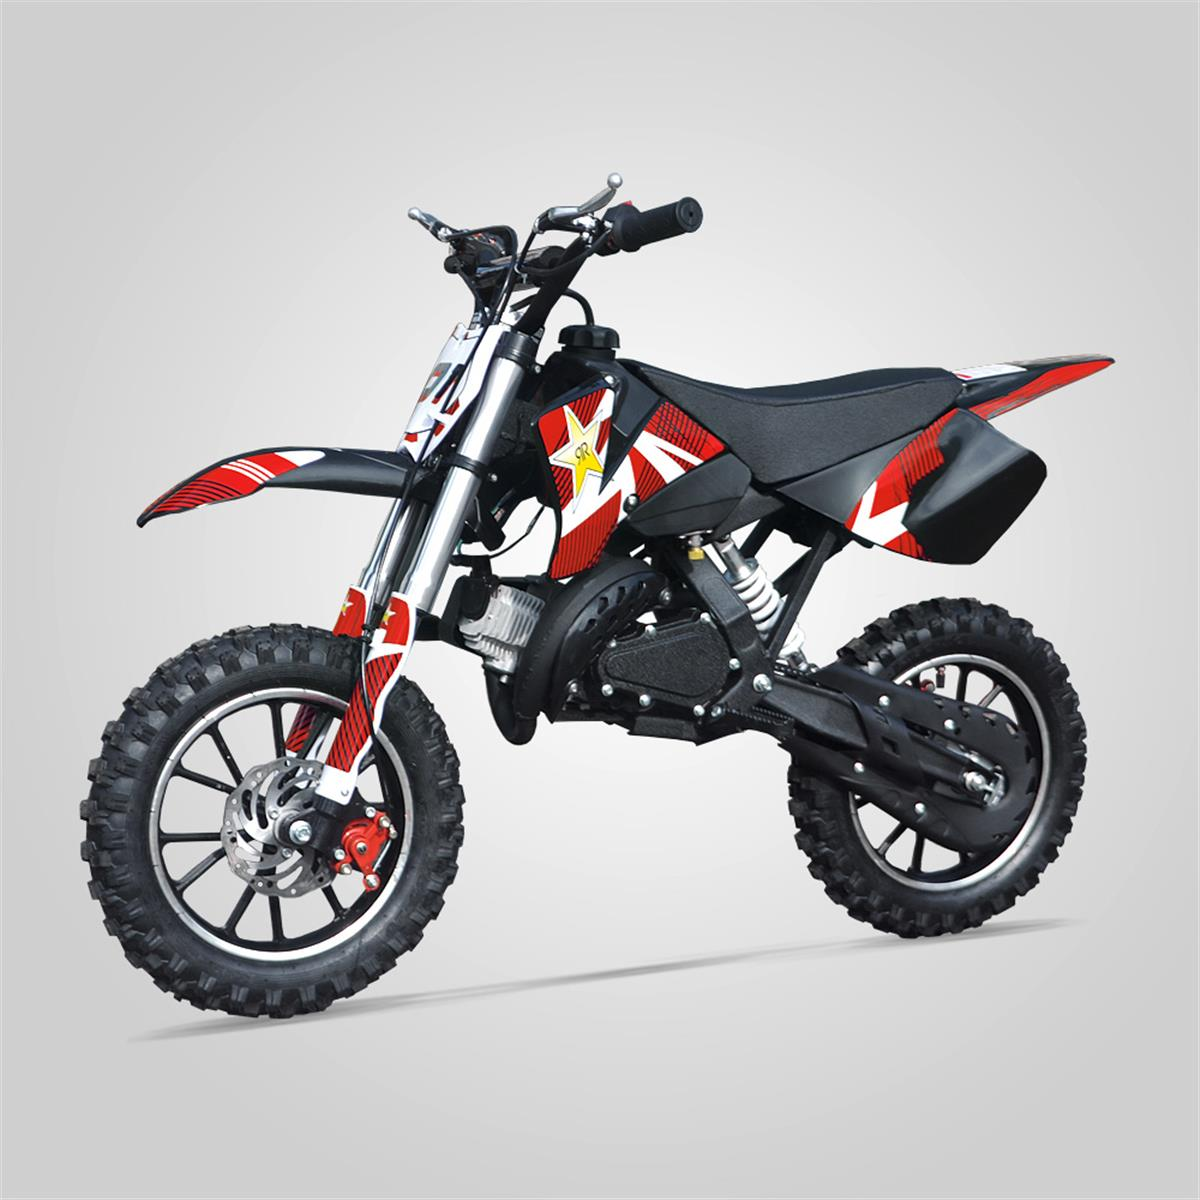 small mx pocket cross rx 49cc rouge smallmx dirt bike pit bike quads minimoto. Black Bedroom Furniture Sets. Home Design Ideas